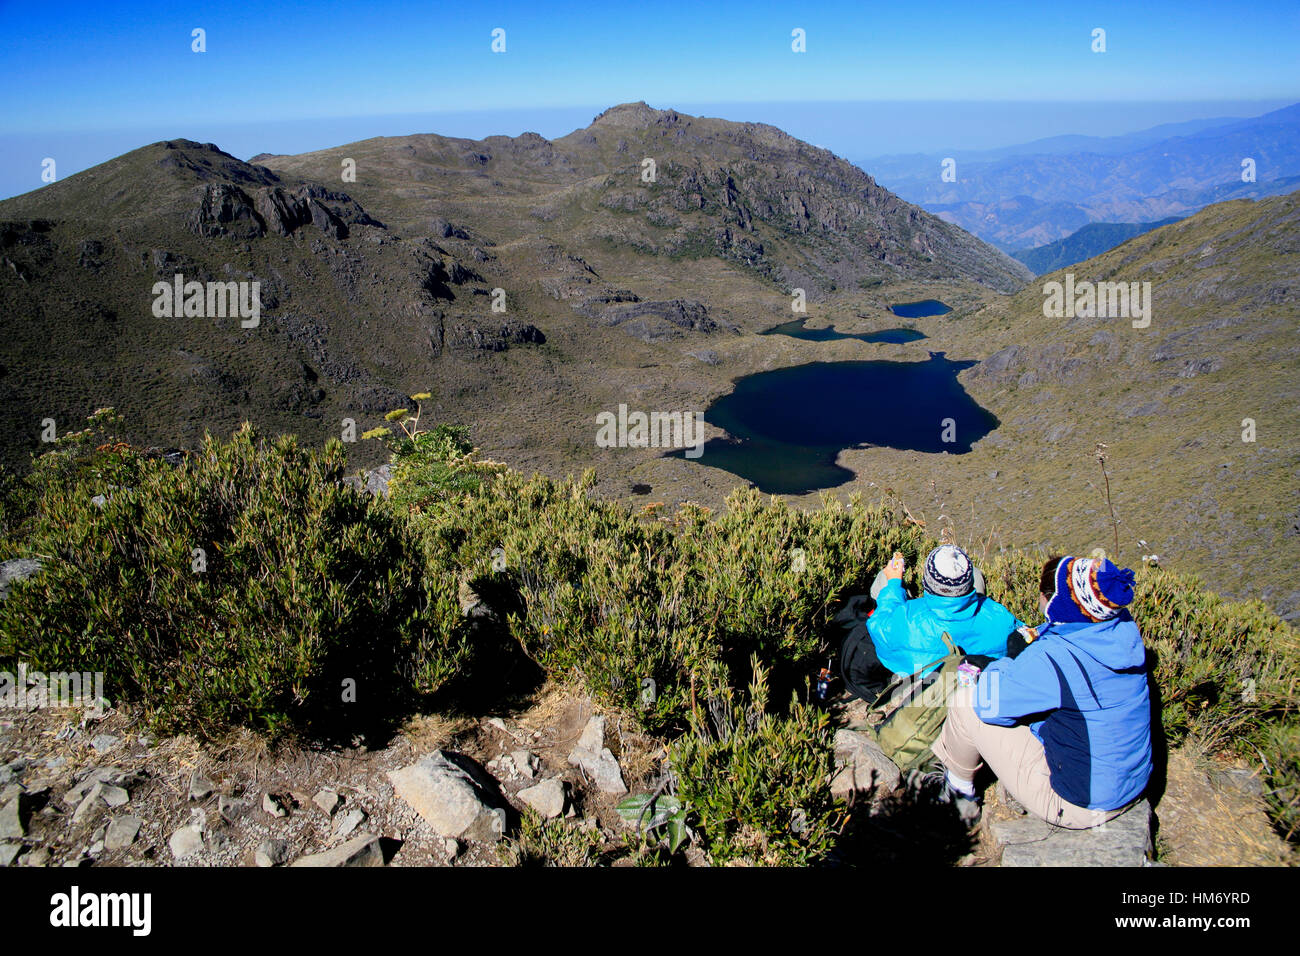 Tourists looking at Lake Chirripo from the summit of Mount Chirripo, Costa Rica's highest mountain (3820m). - Stock Image